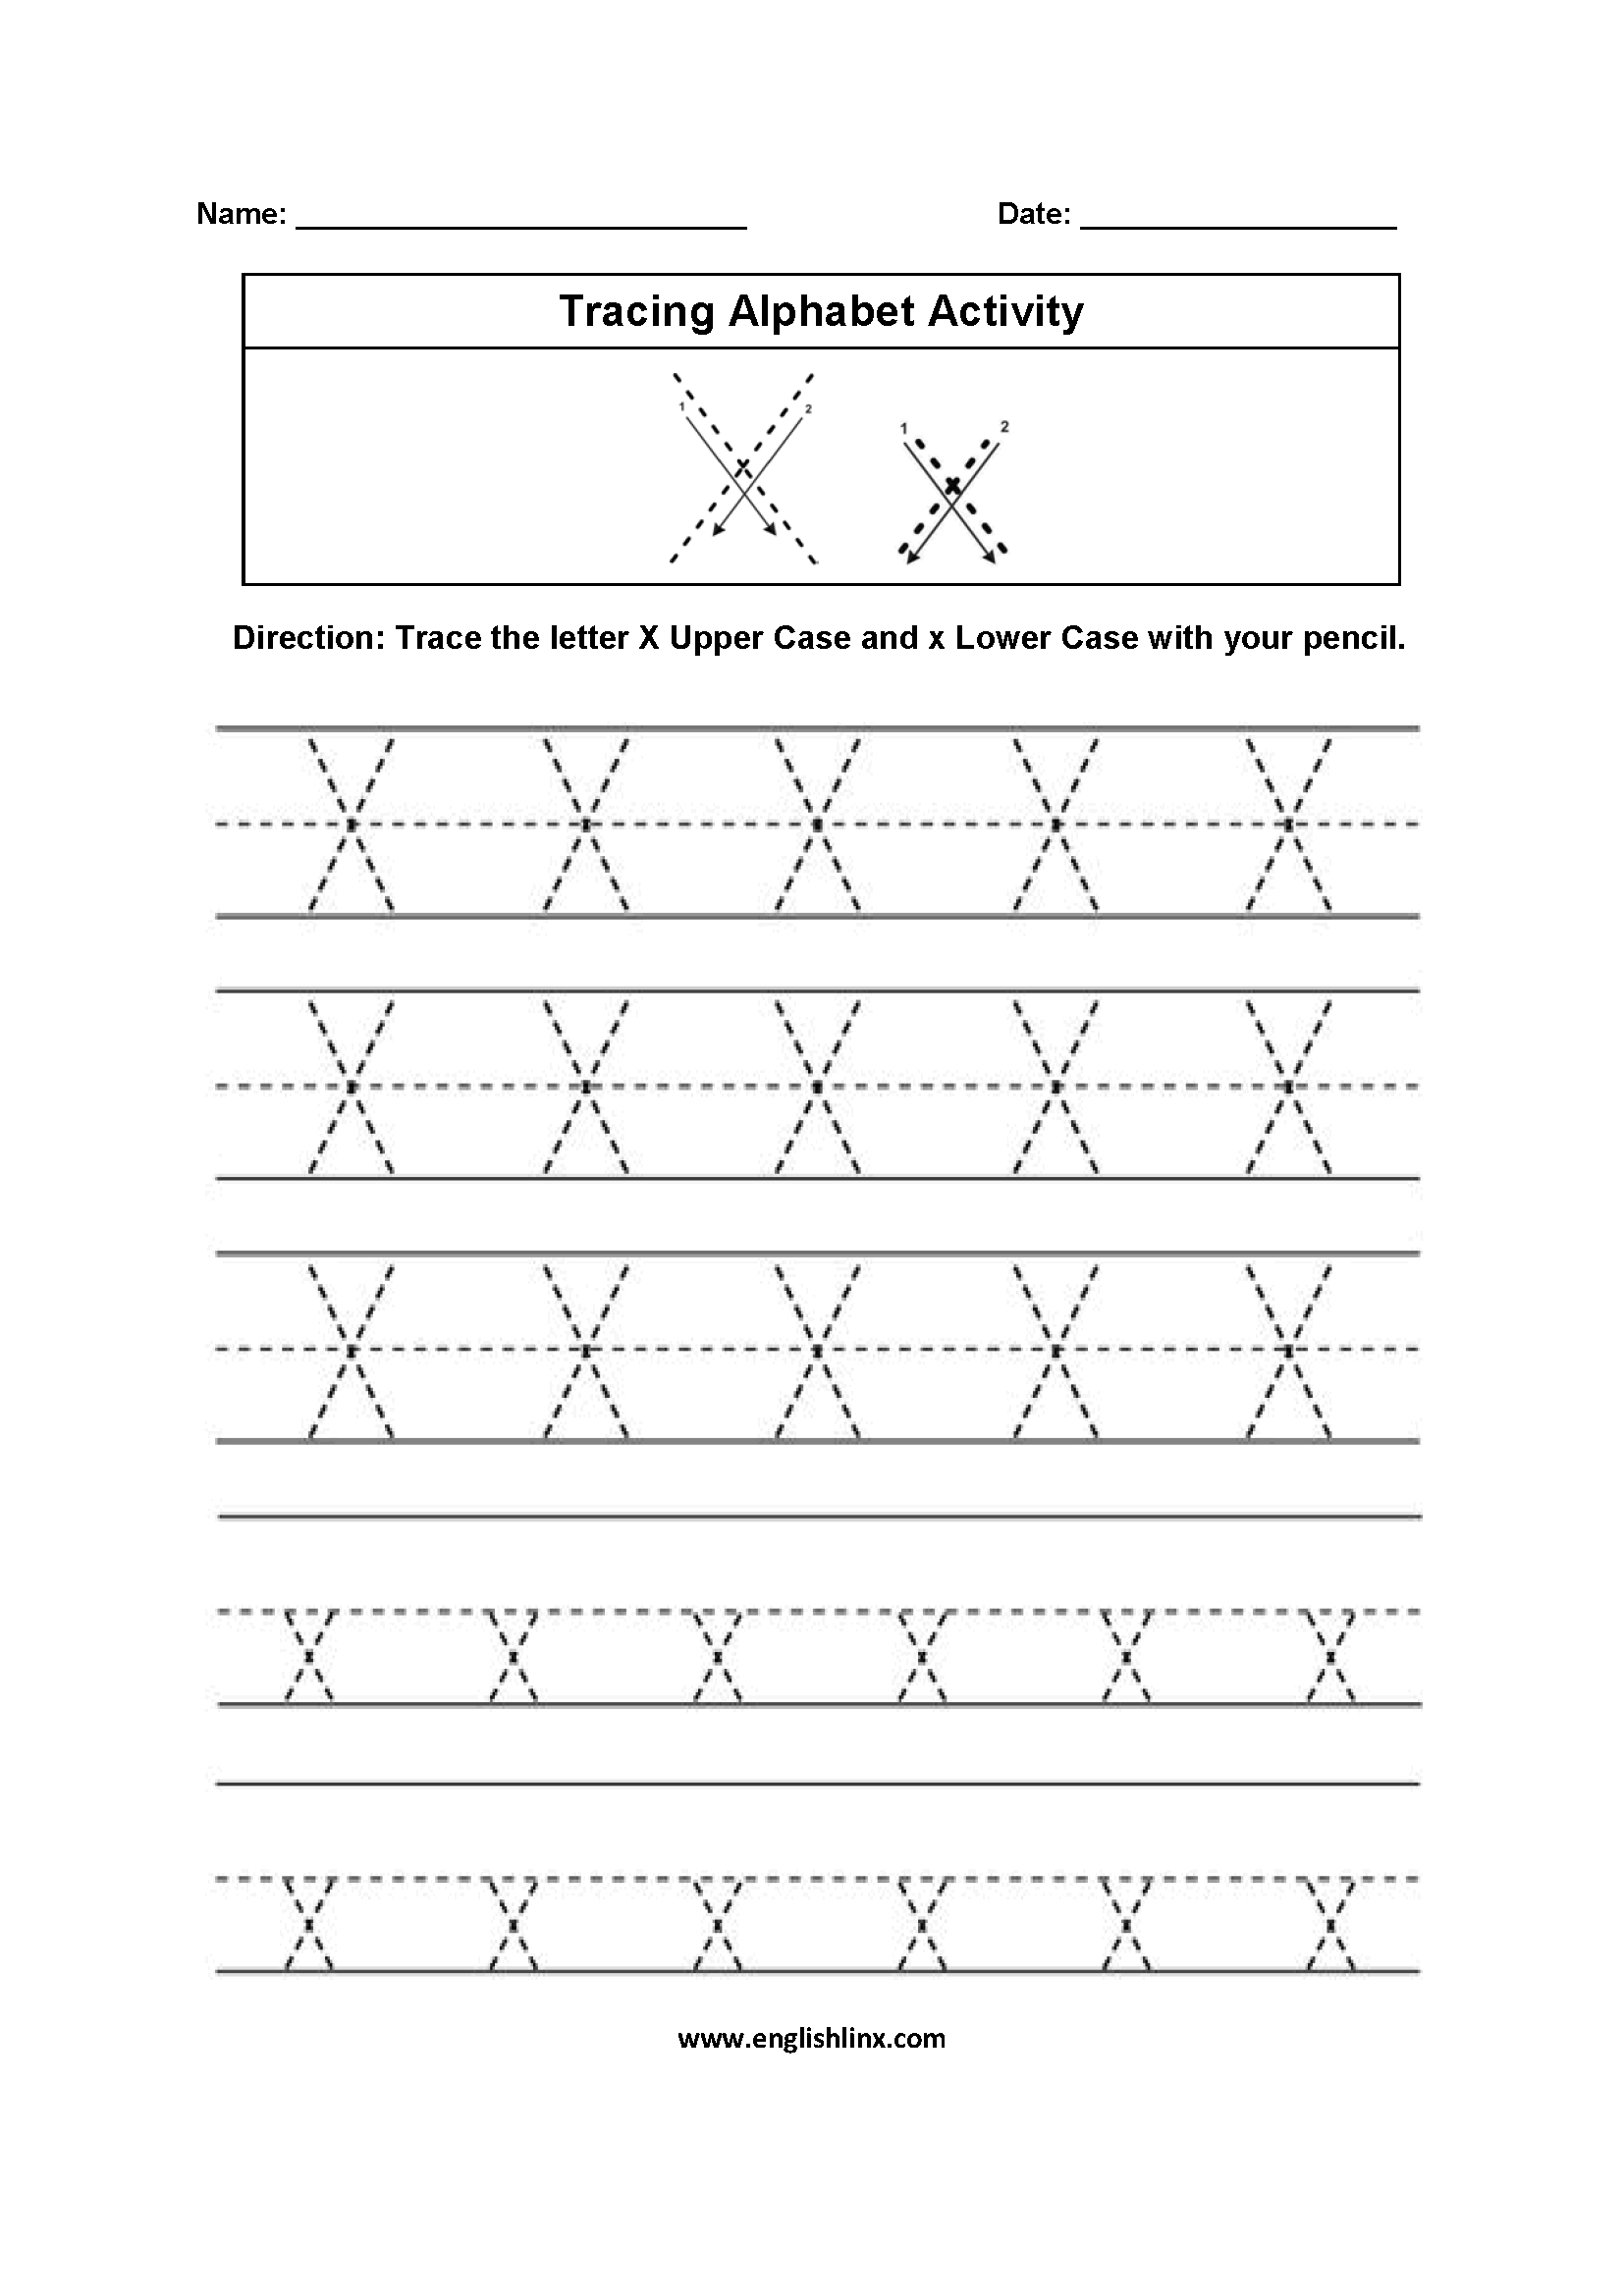 coloring letter x worksheets tracing letter x worksheets tracinglettersworksheetscom letter coloring worksheets x